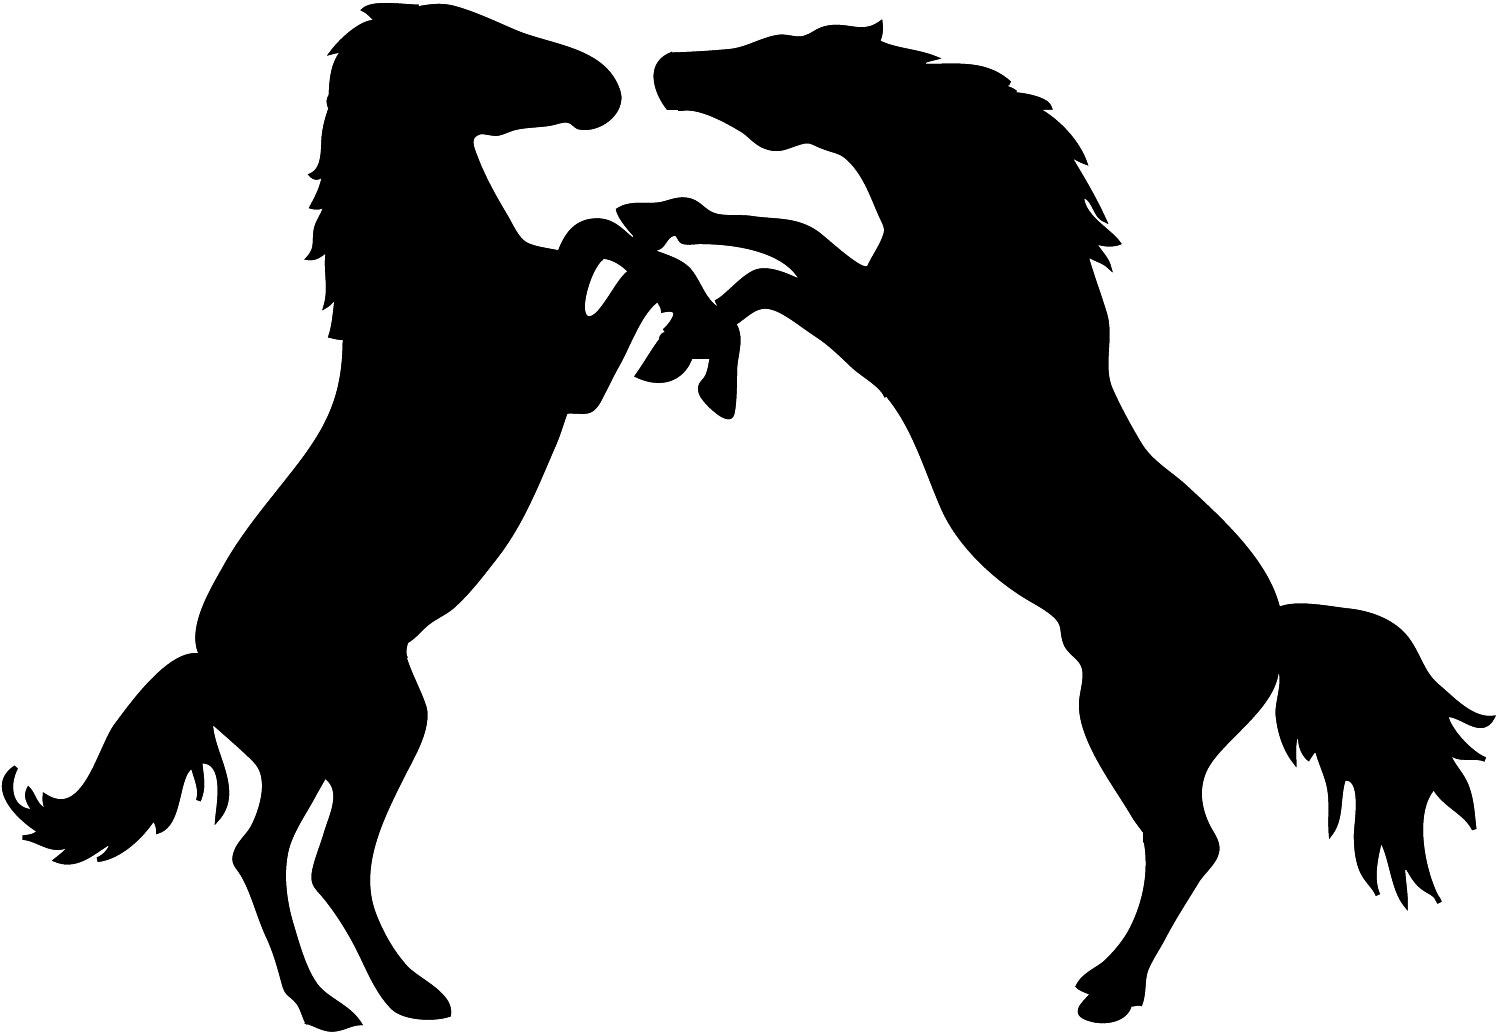 horseshoe silhouette clip art - photo #42